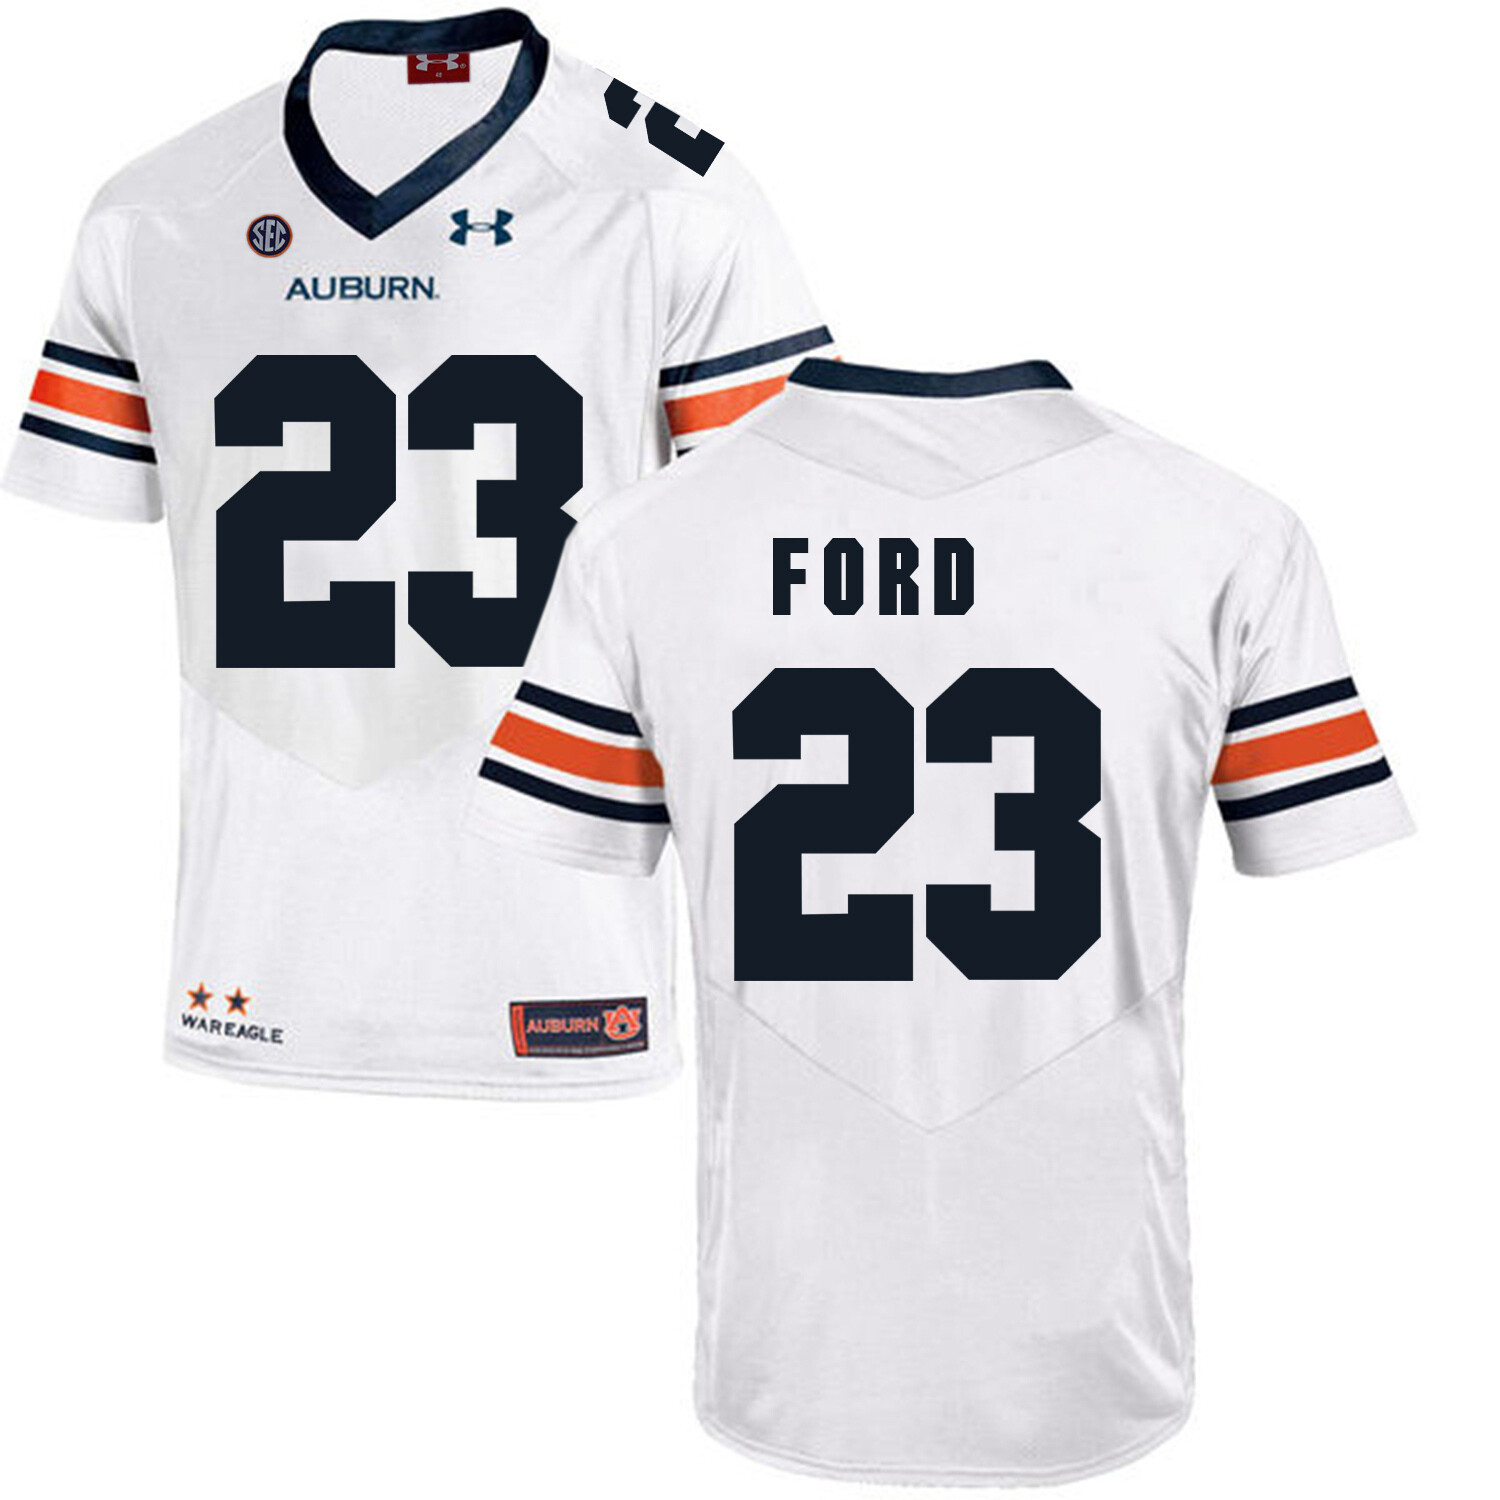 Auburn Tigers Under Armour #23 Rudy Ford Football Jersey White